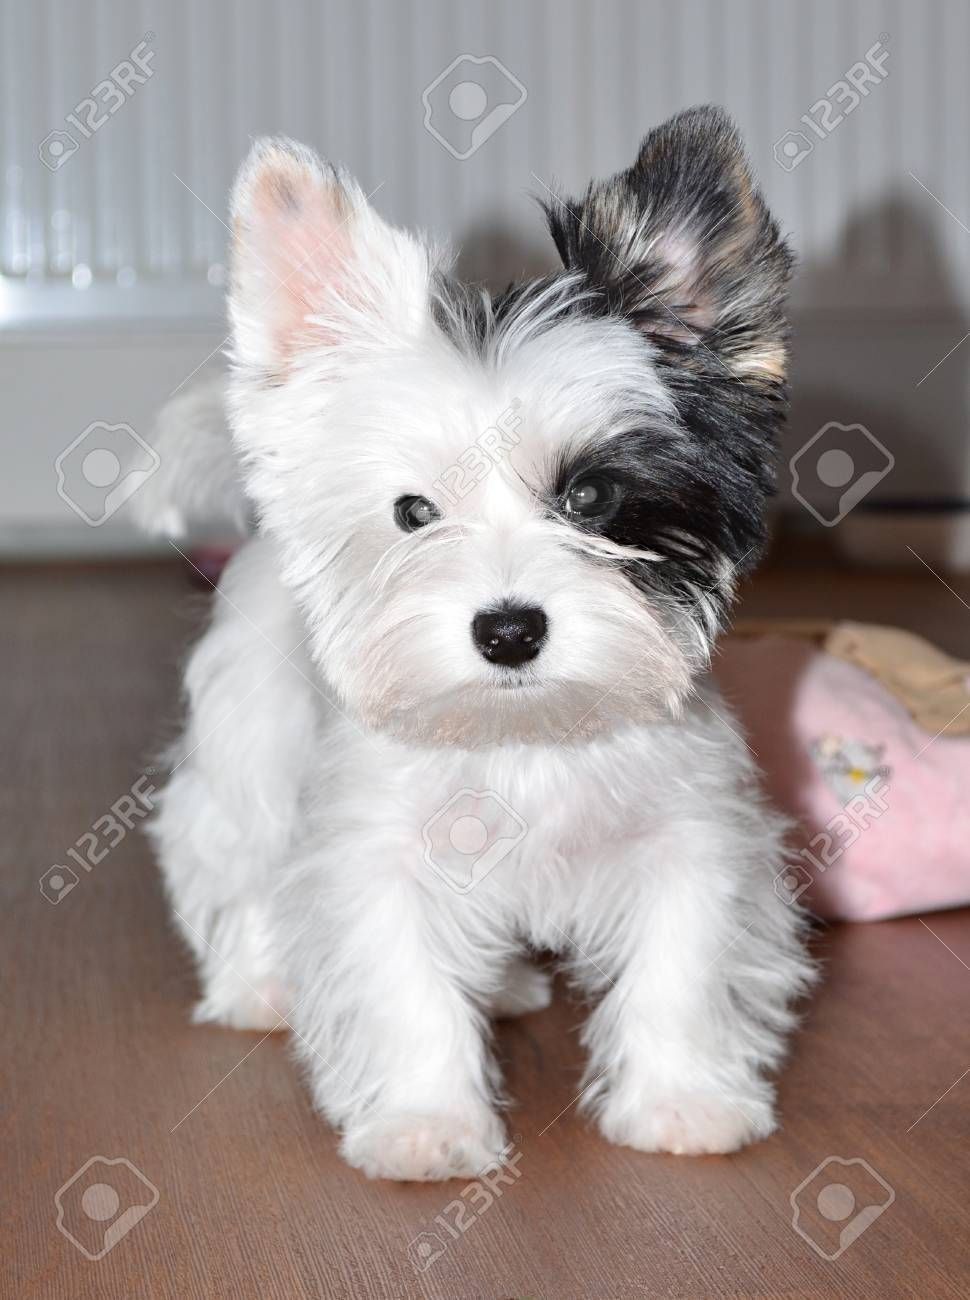 Puppy Yorkshire Terrier Biewer Black And White Cute Baby Dogs